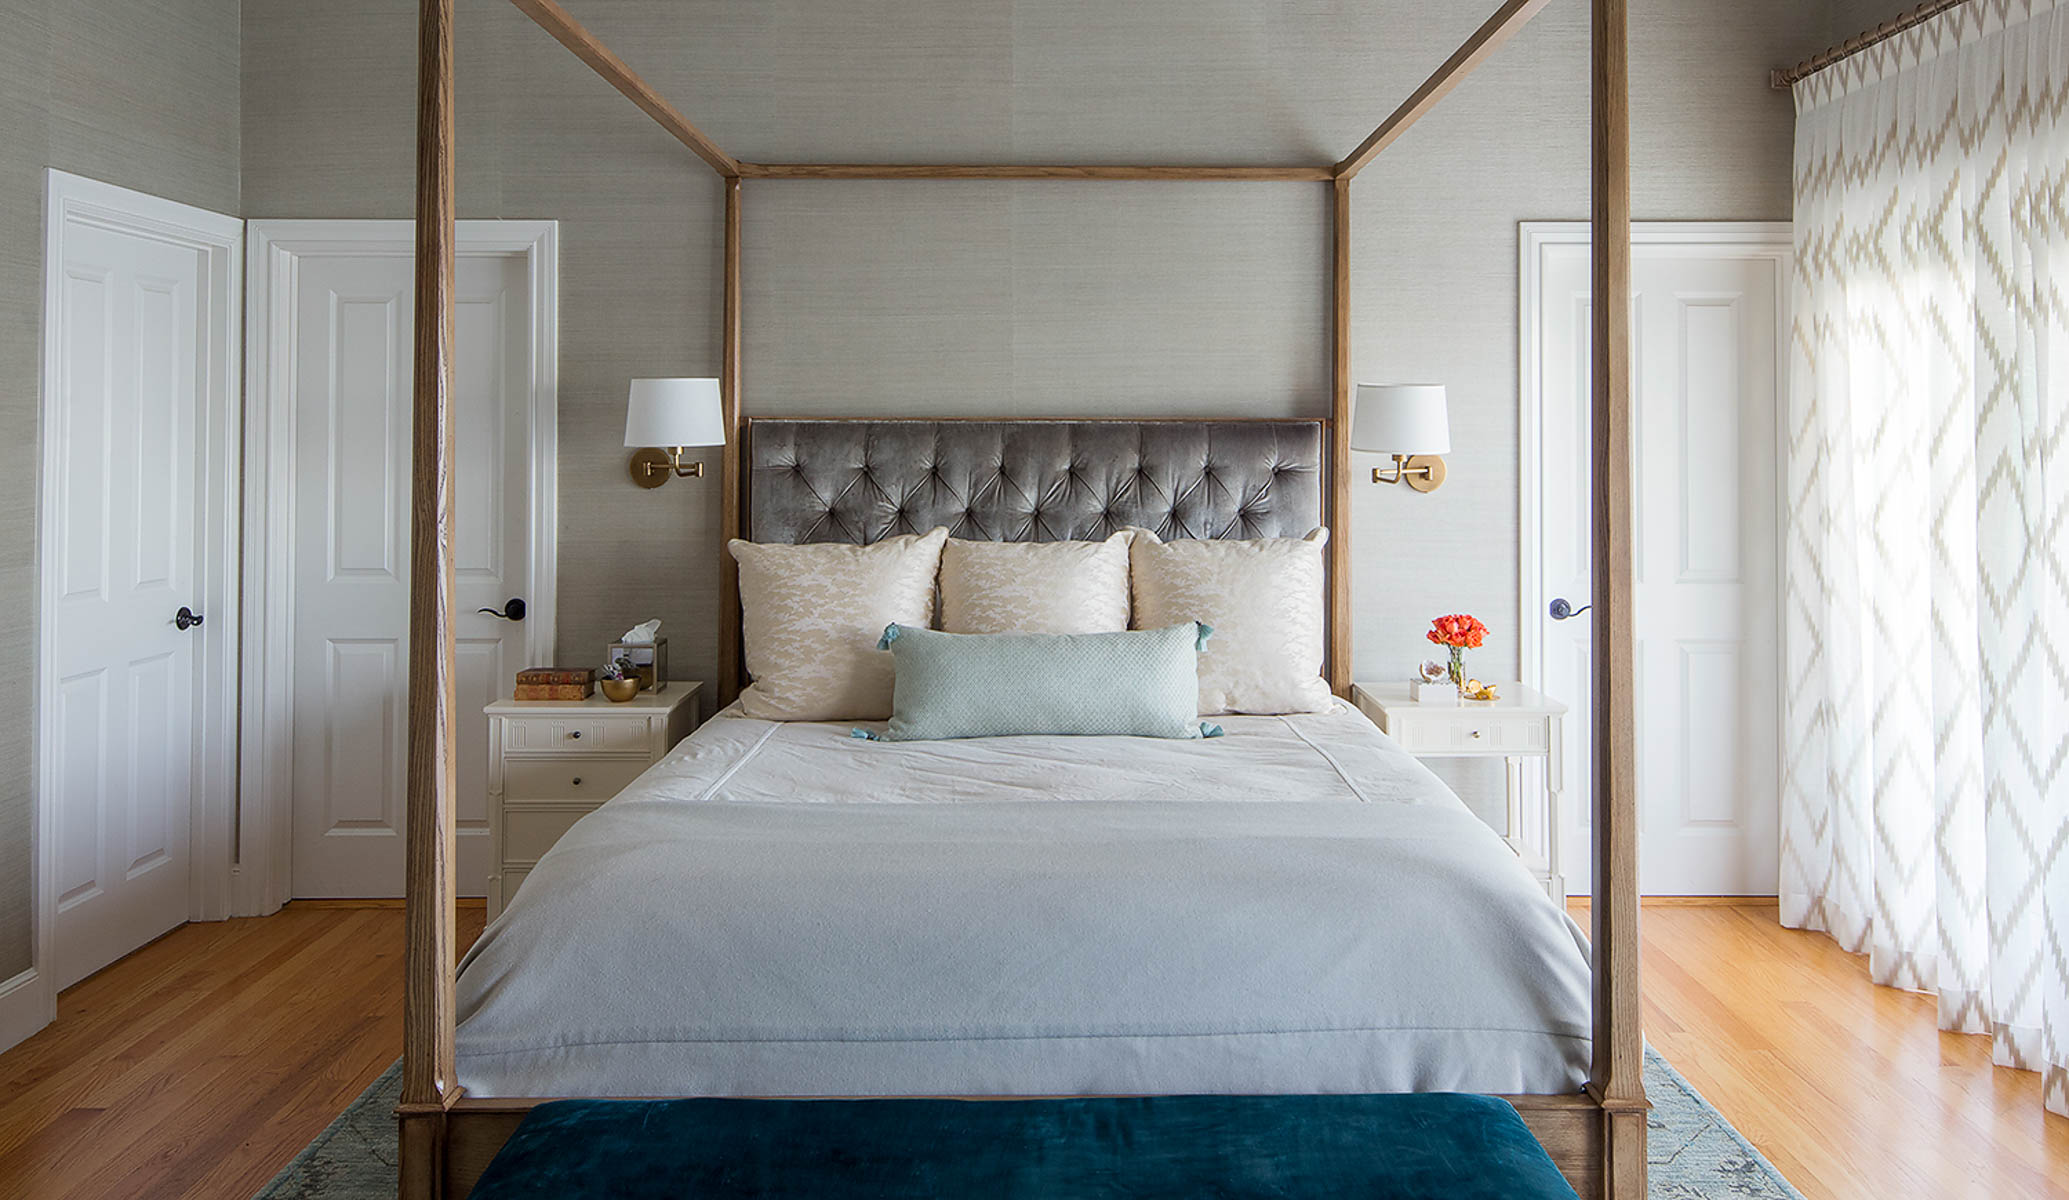 A four poster bed with nightstands on either side.